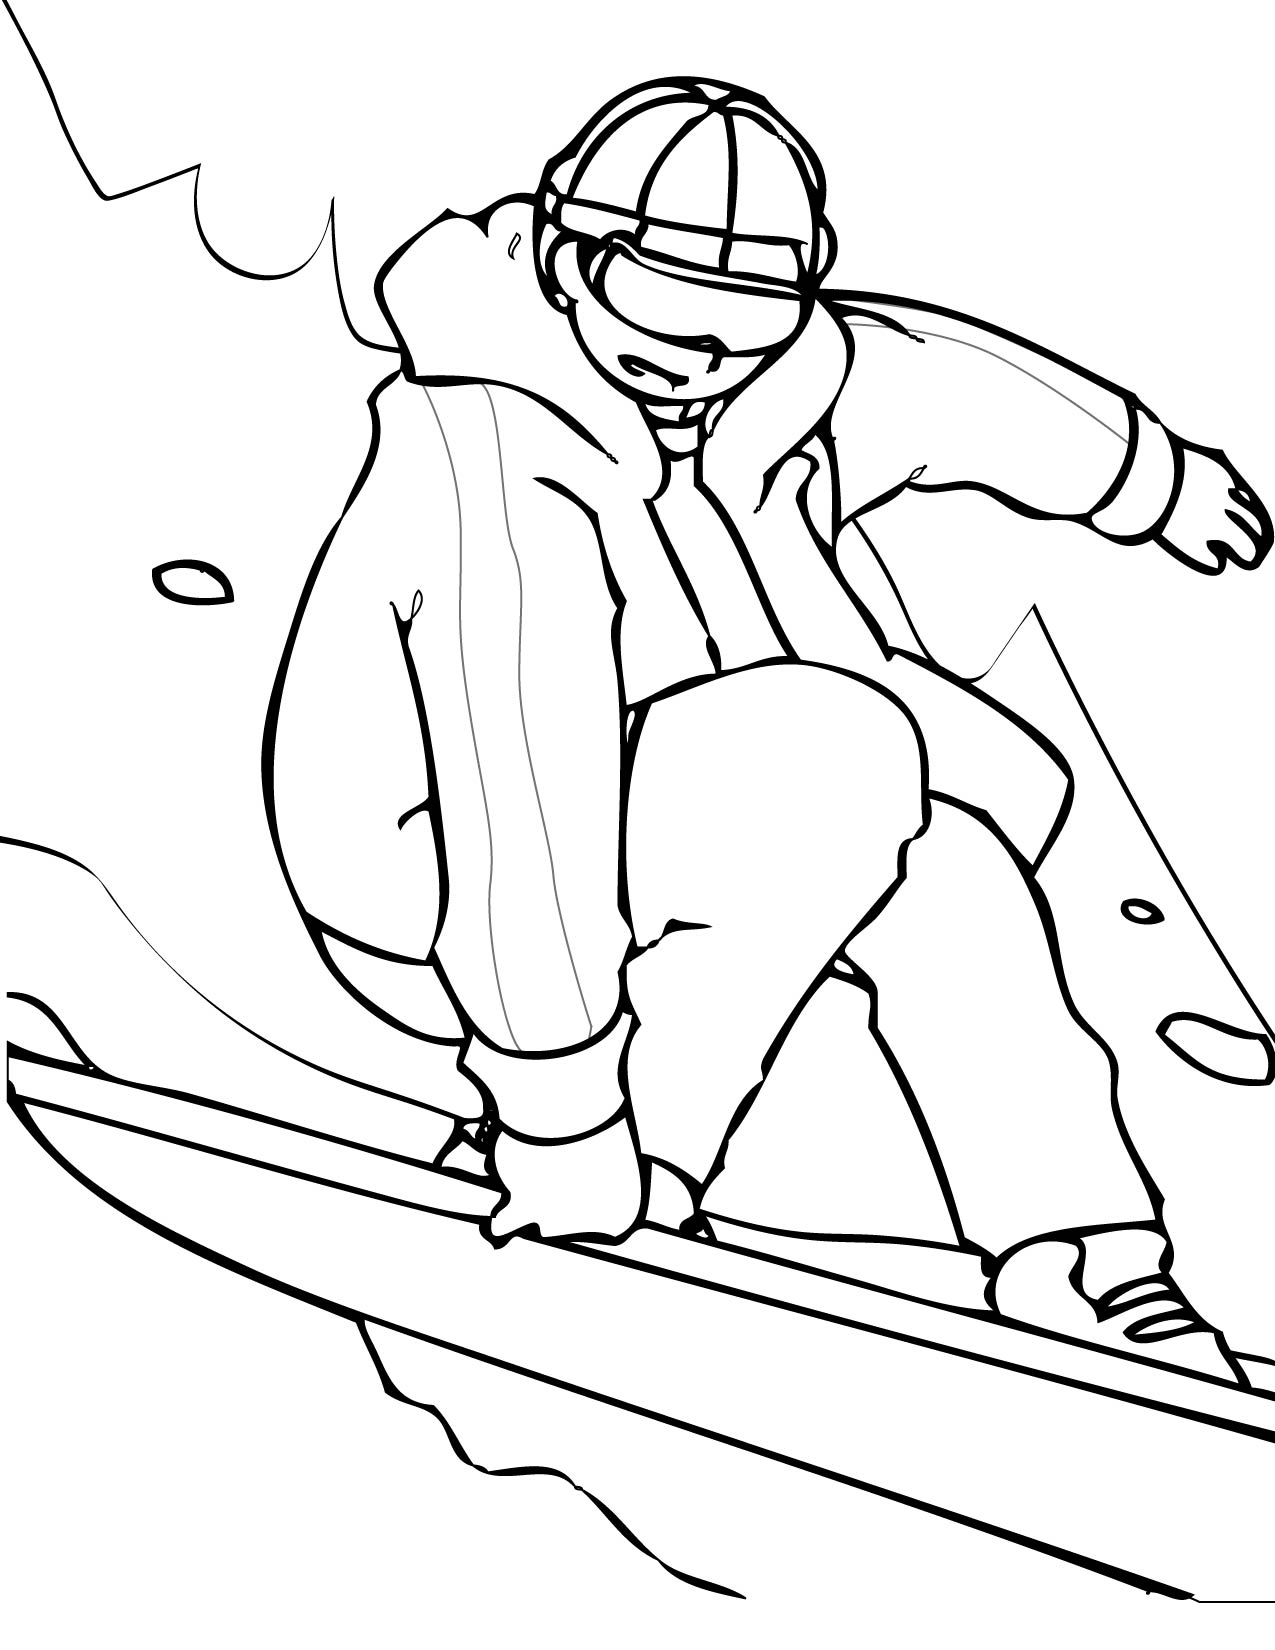 snowboarding coloring page woo jr kids activities. cartoon ...